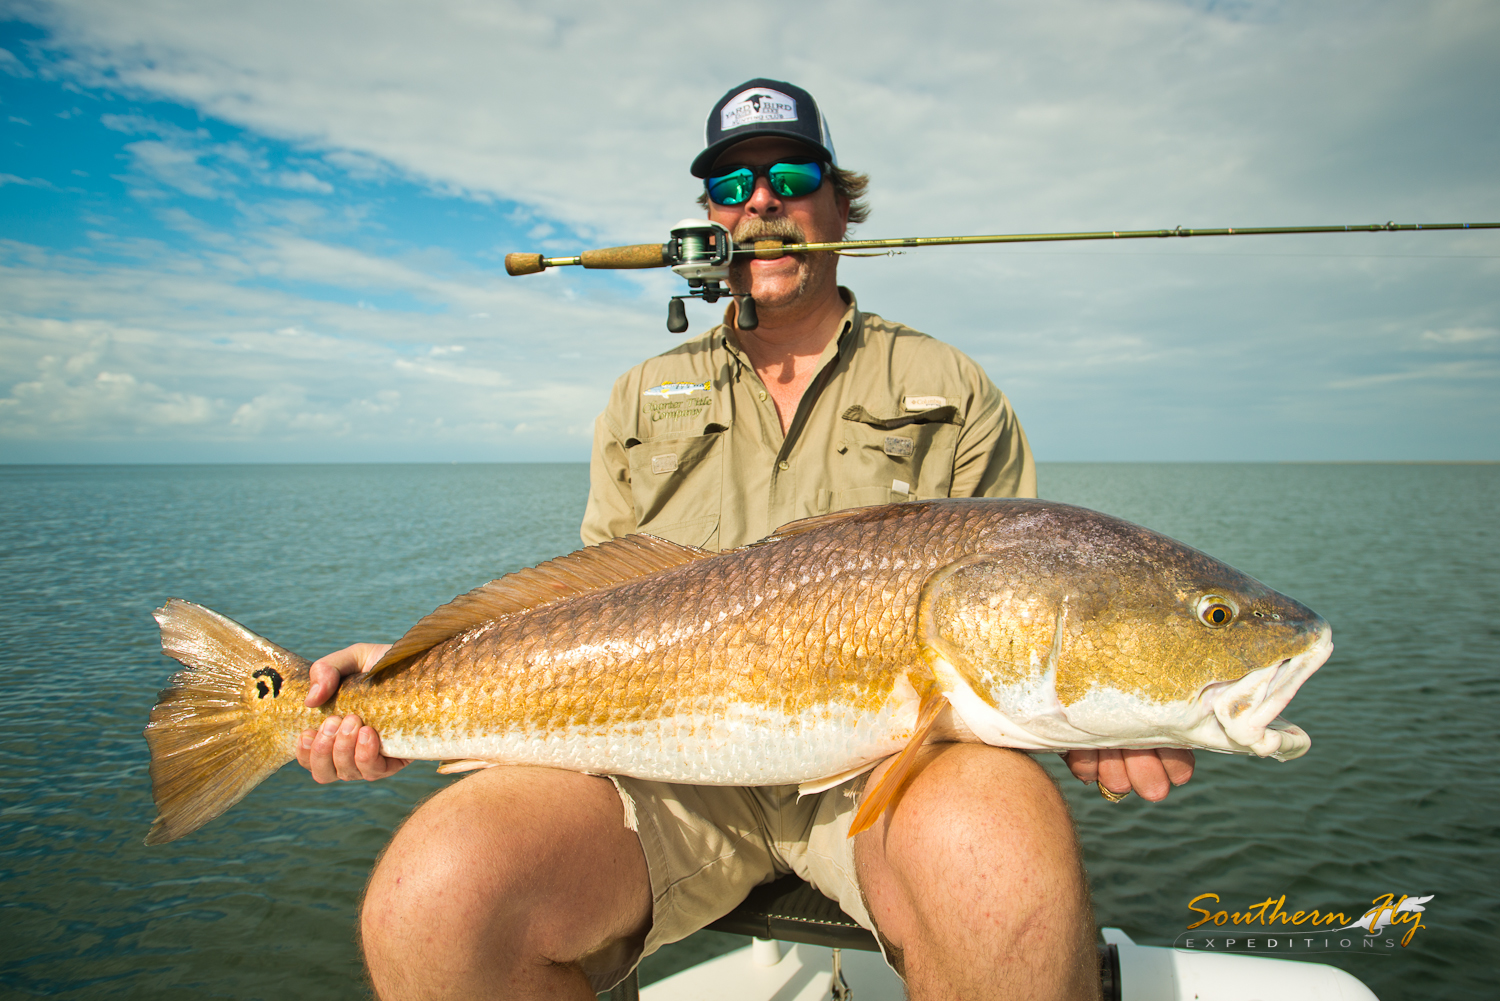 Spin Fishing Trips Southern Louisiana Southern Fly Expeditions